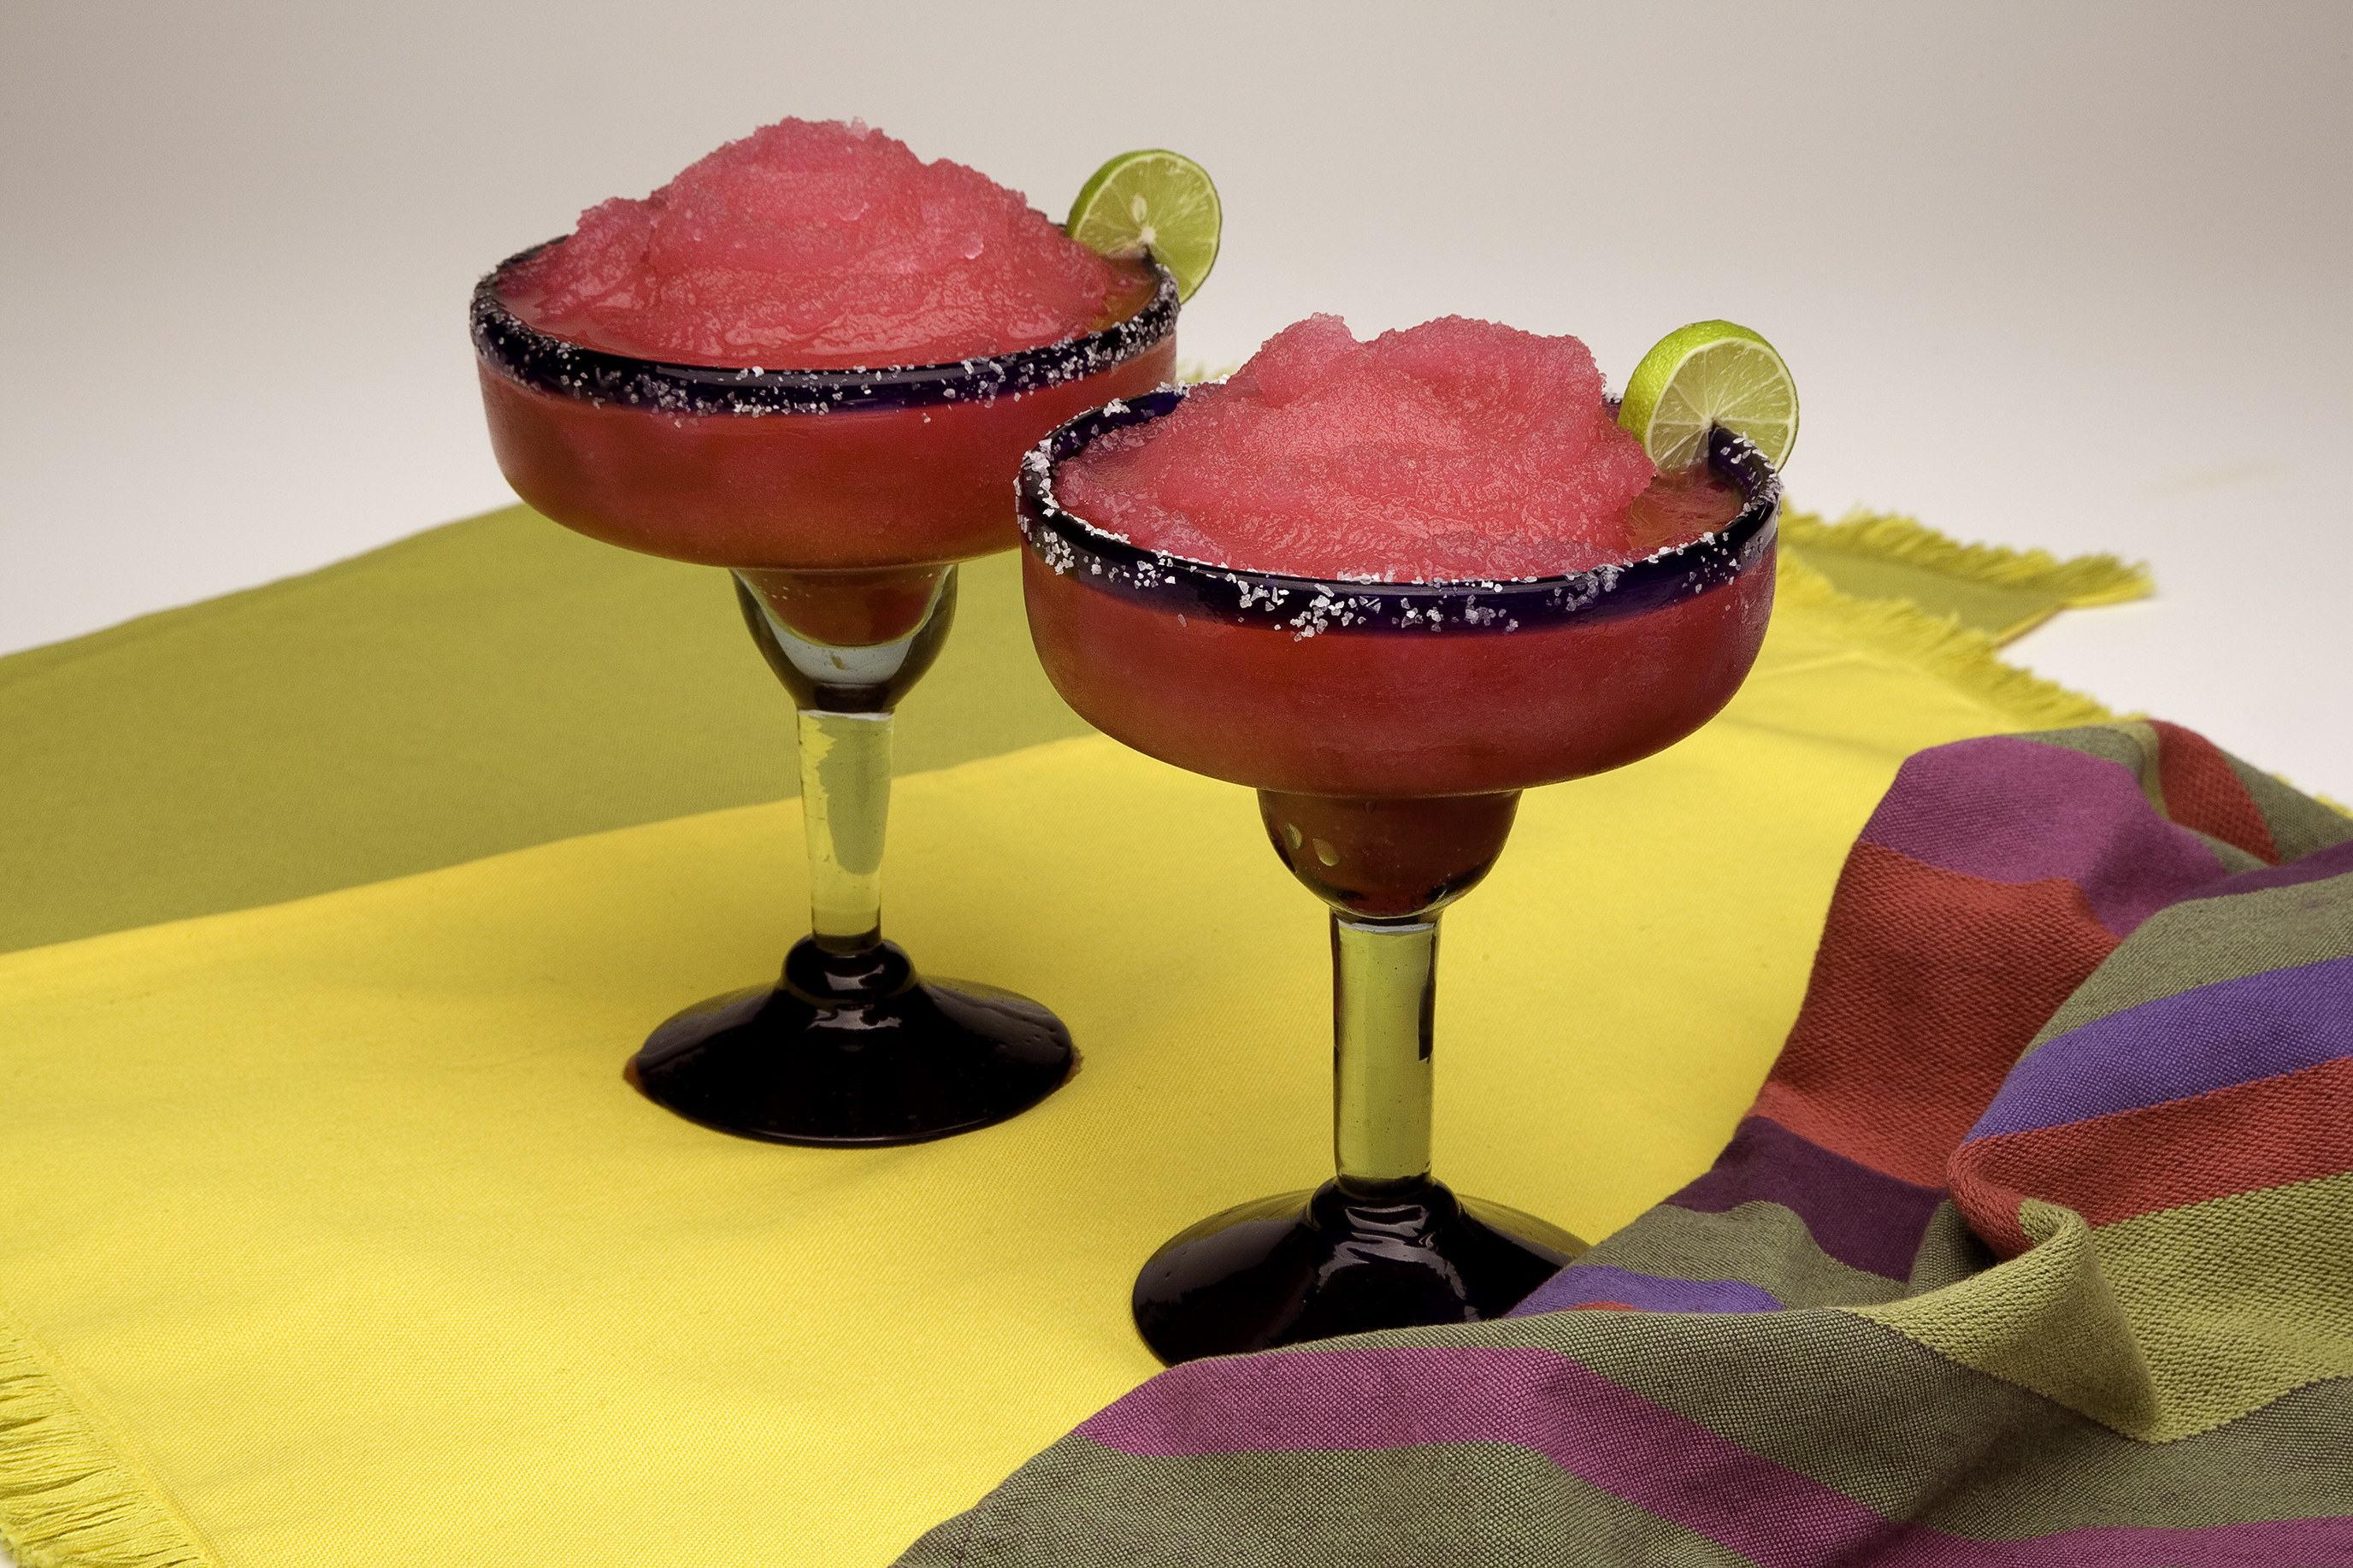 The Fort's modern interpretation, the prickly pear margarita